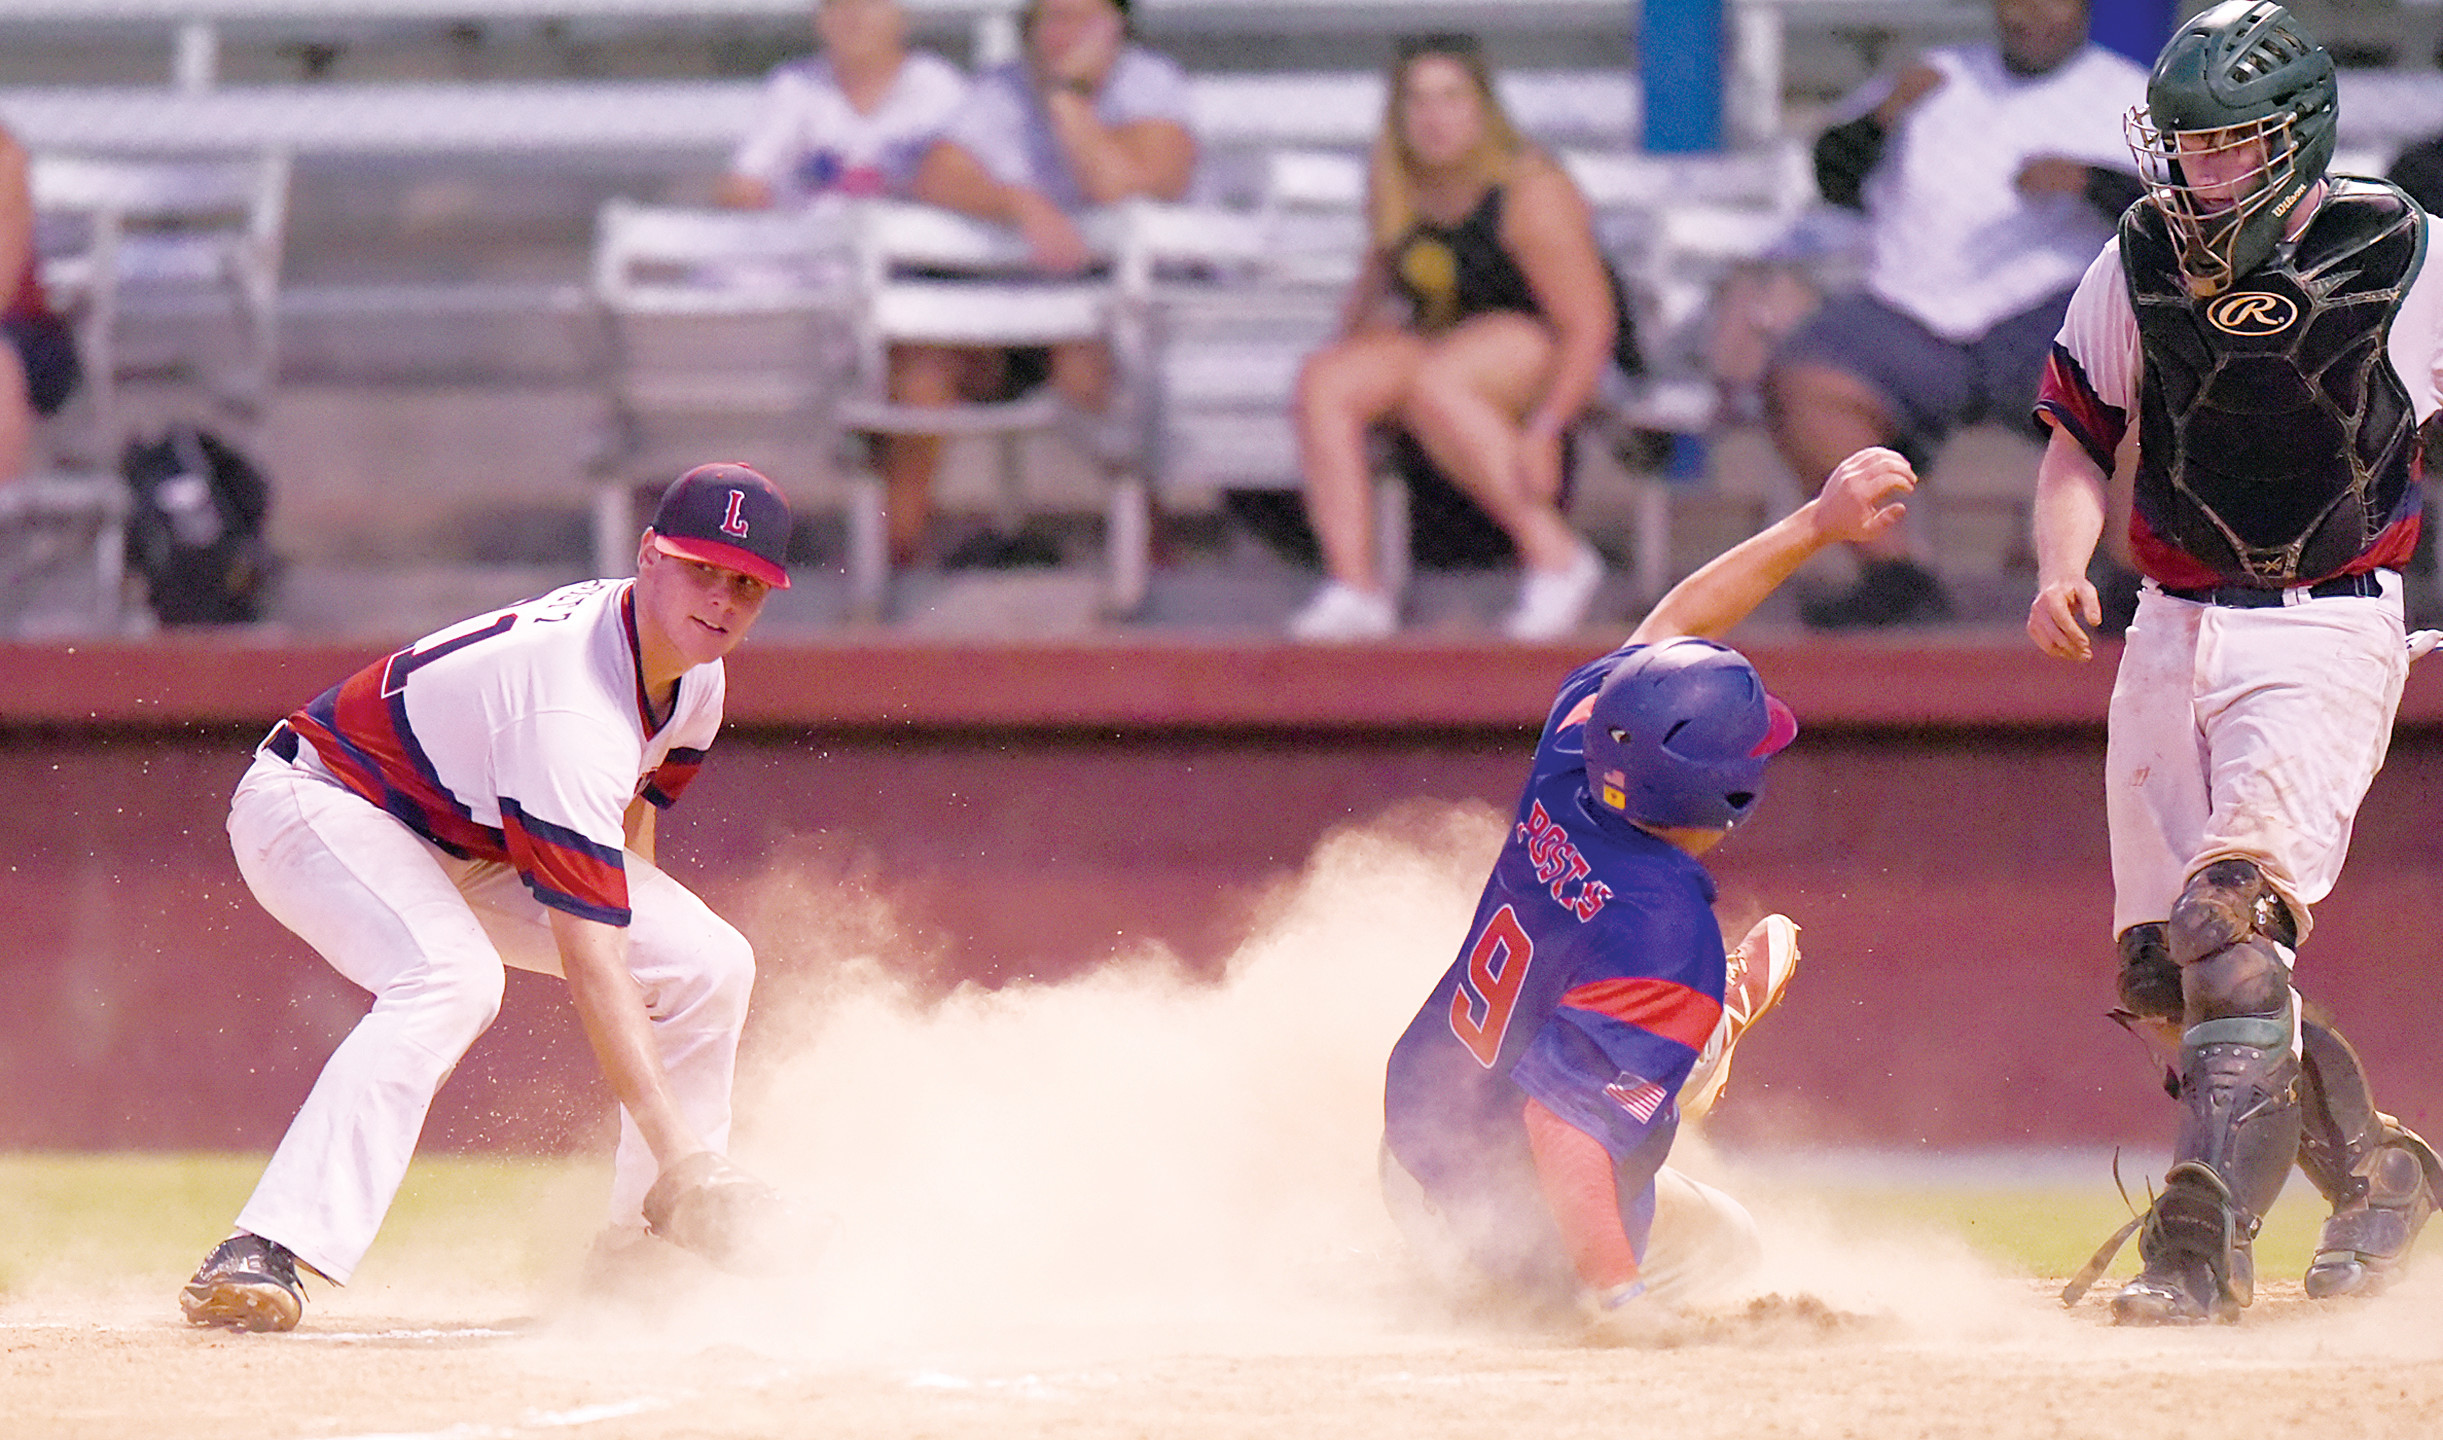 Sumter third baseman Joey Pereira (9) slides safely into home on a passed ball as Lexington pitcher Jon Scott, left, covers the plate in the P-15's 10-1 win in the opening game of the second-round state playoff series on Wednesday at Riley Park.